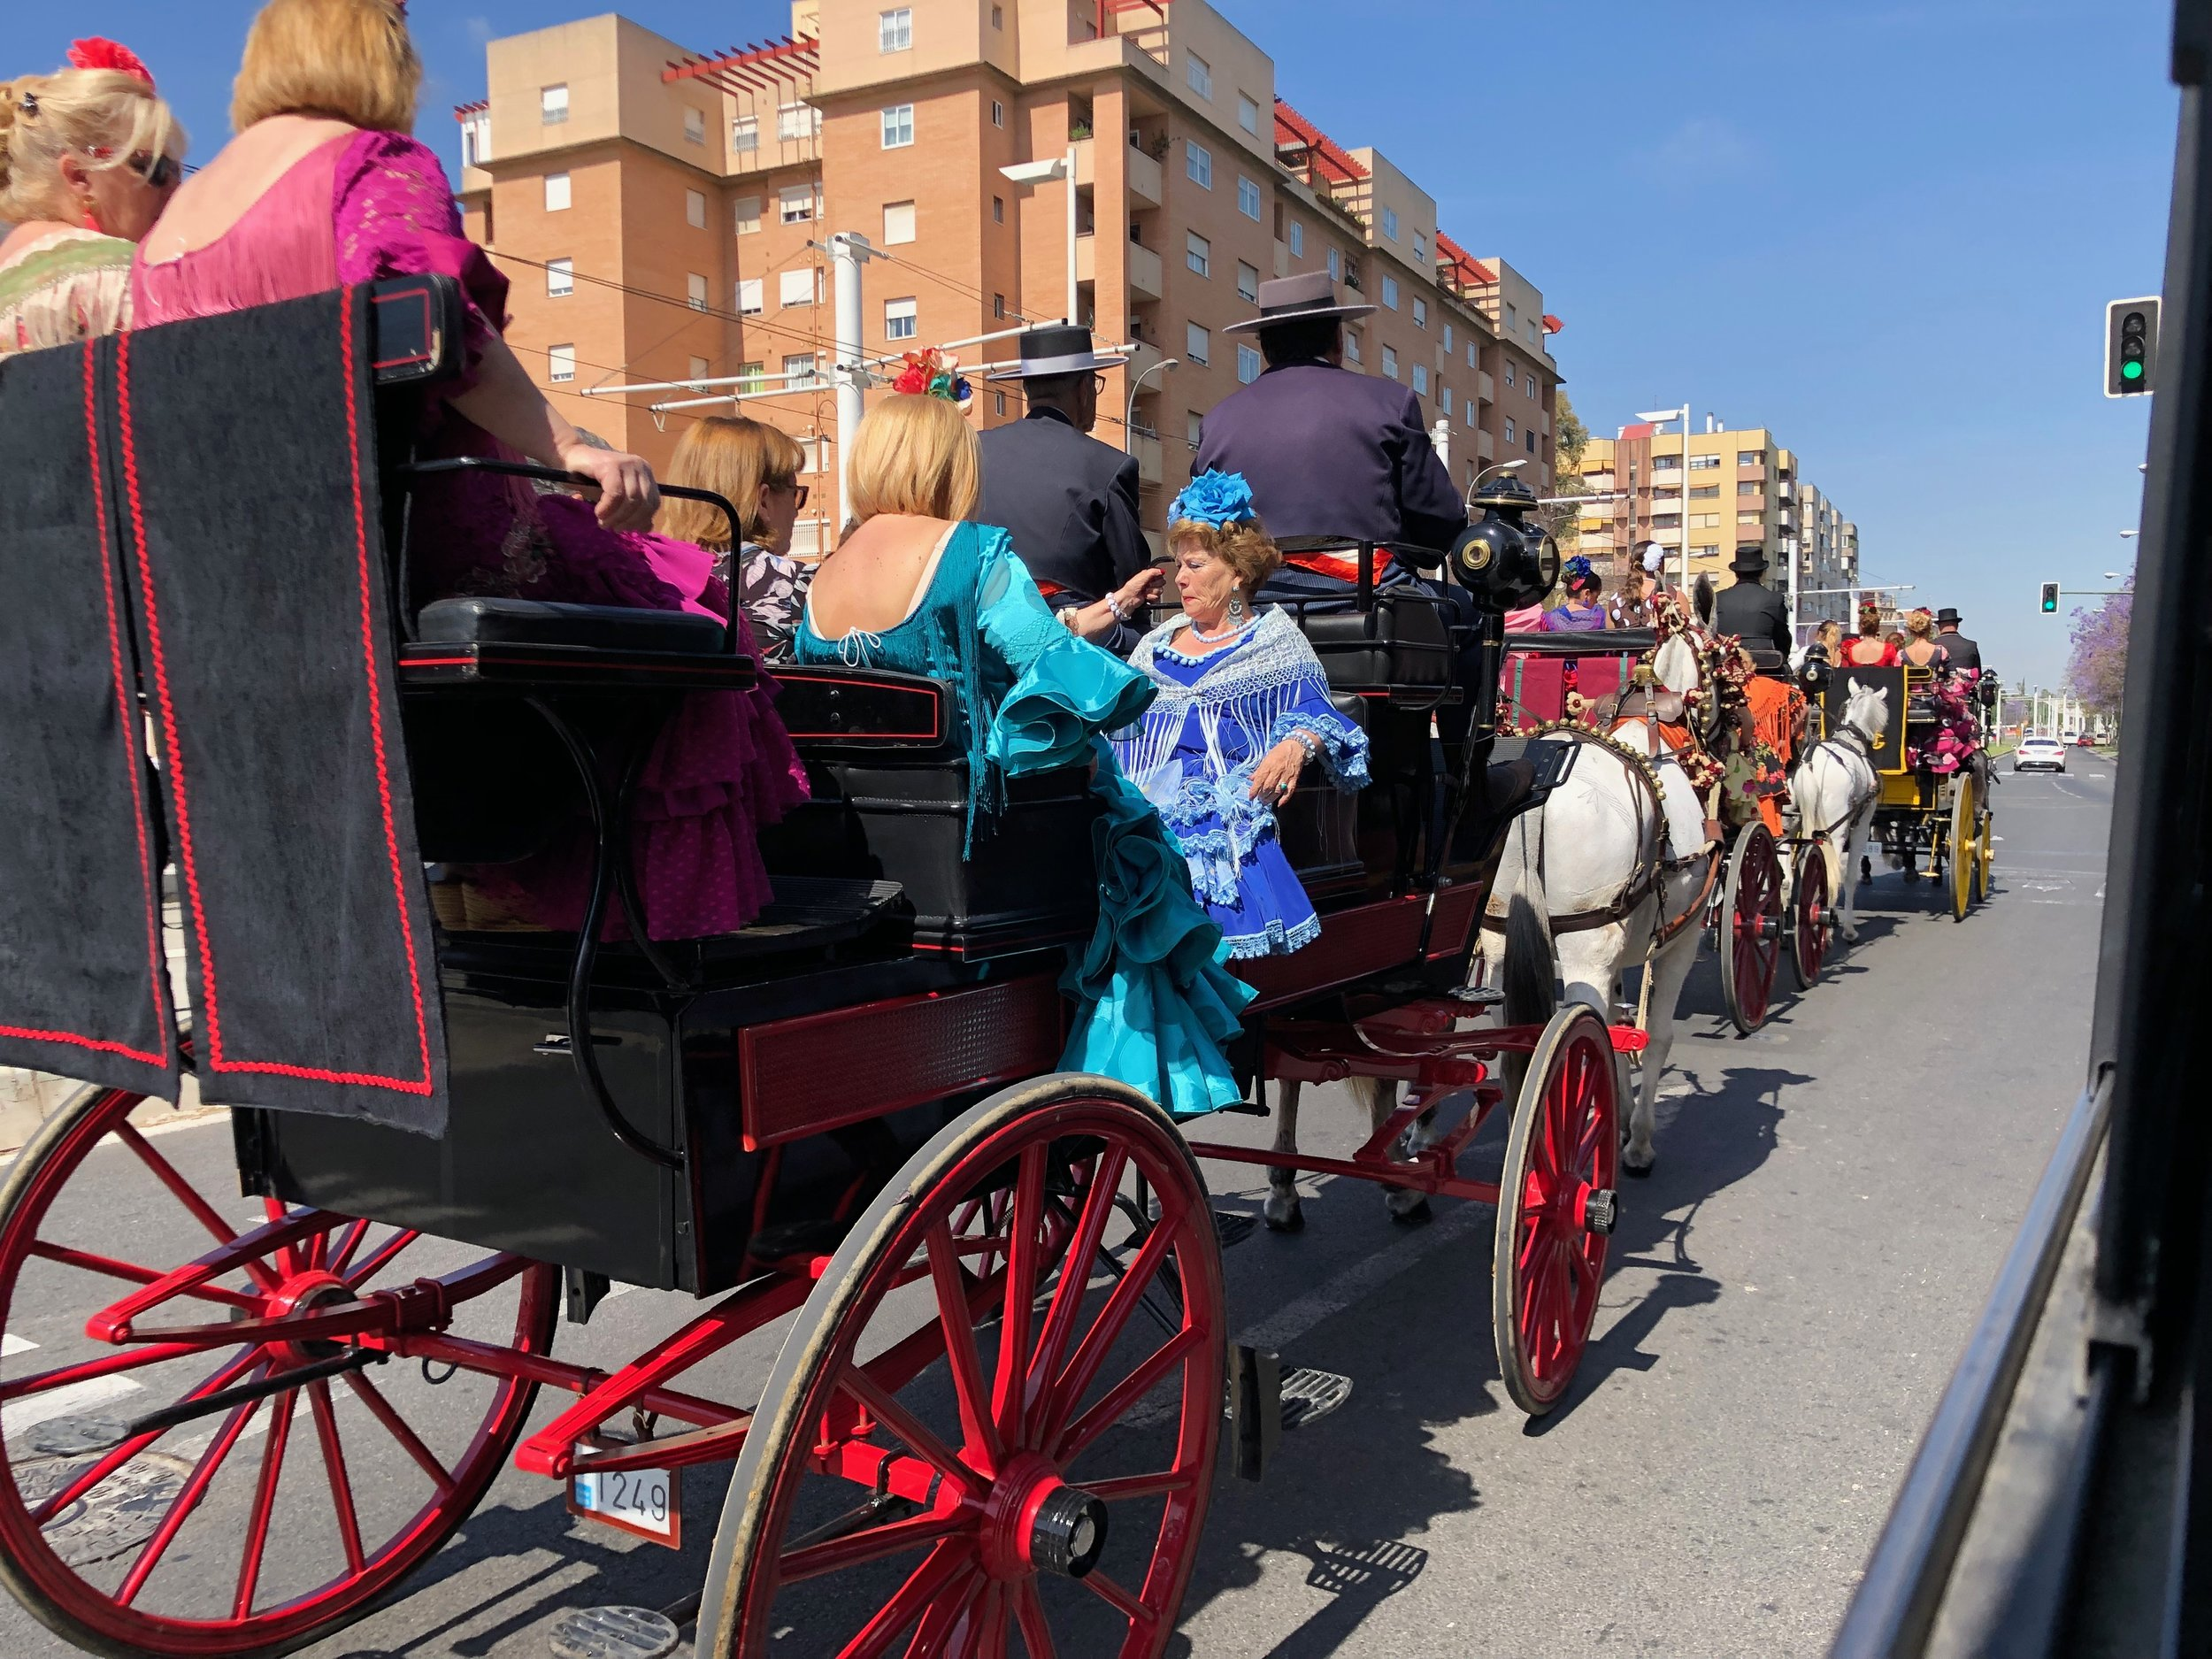 The horse-drawn carriages and their dressed up passengers mingle with cars and buses on the roads to the fair.